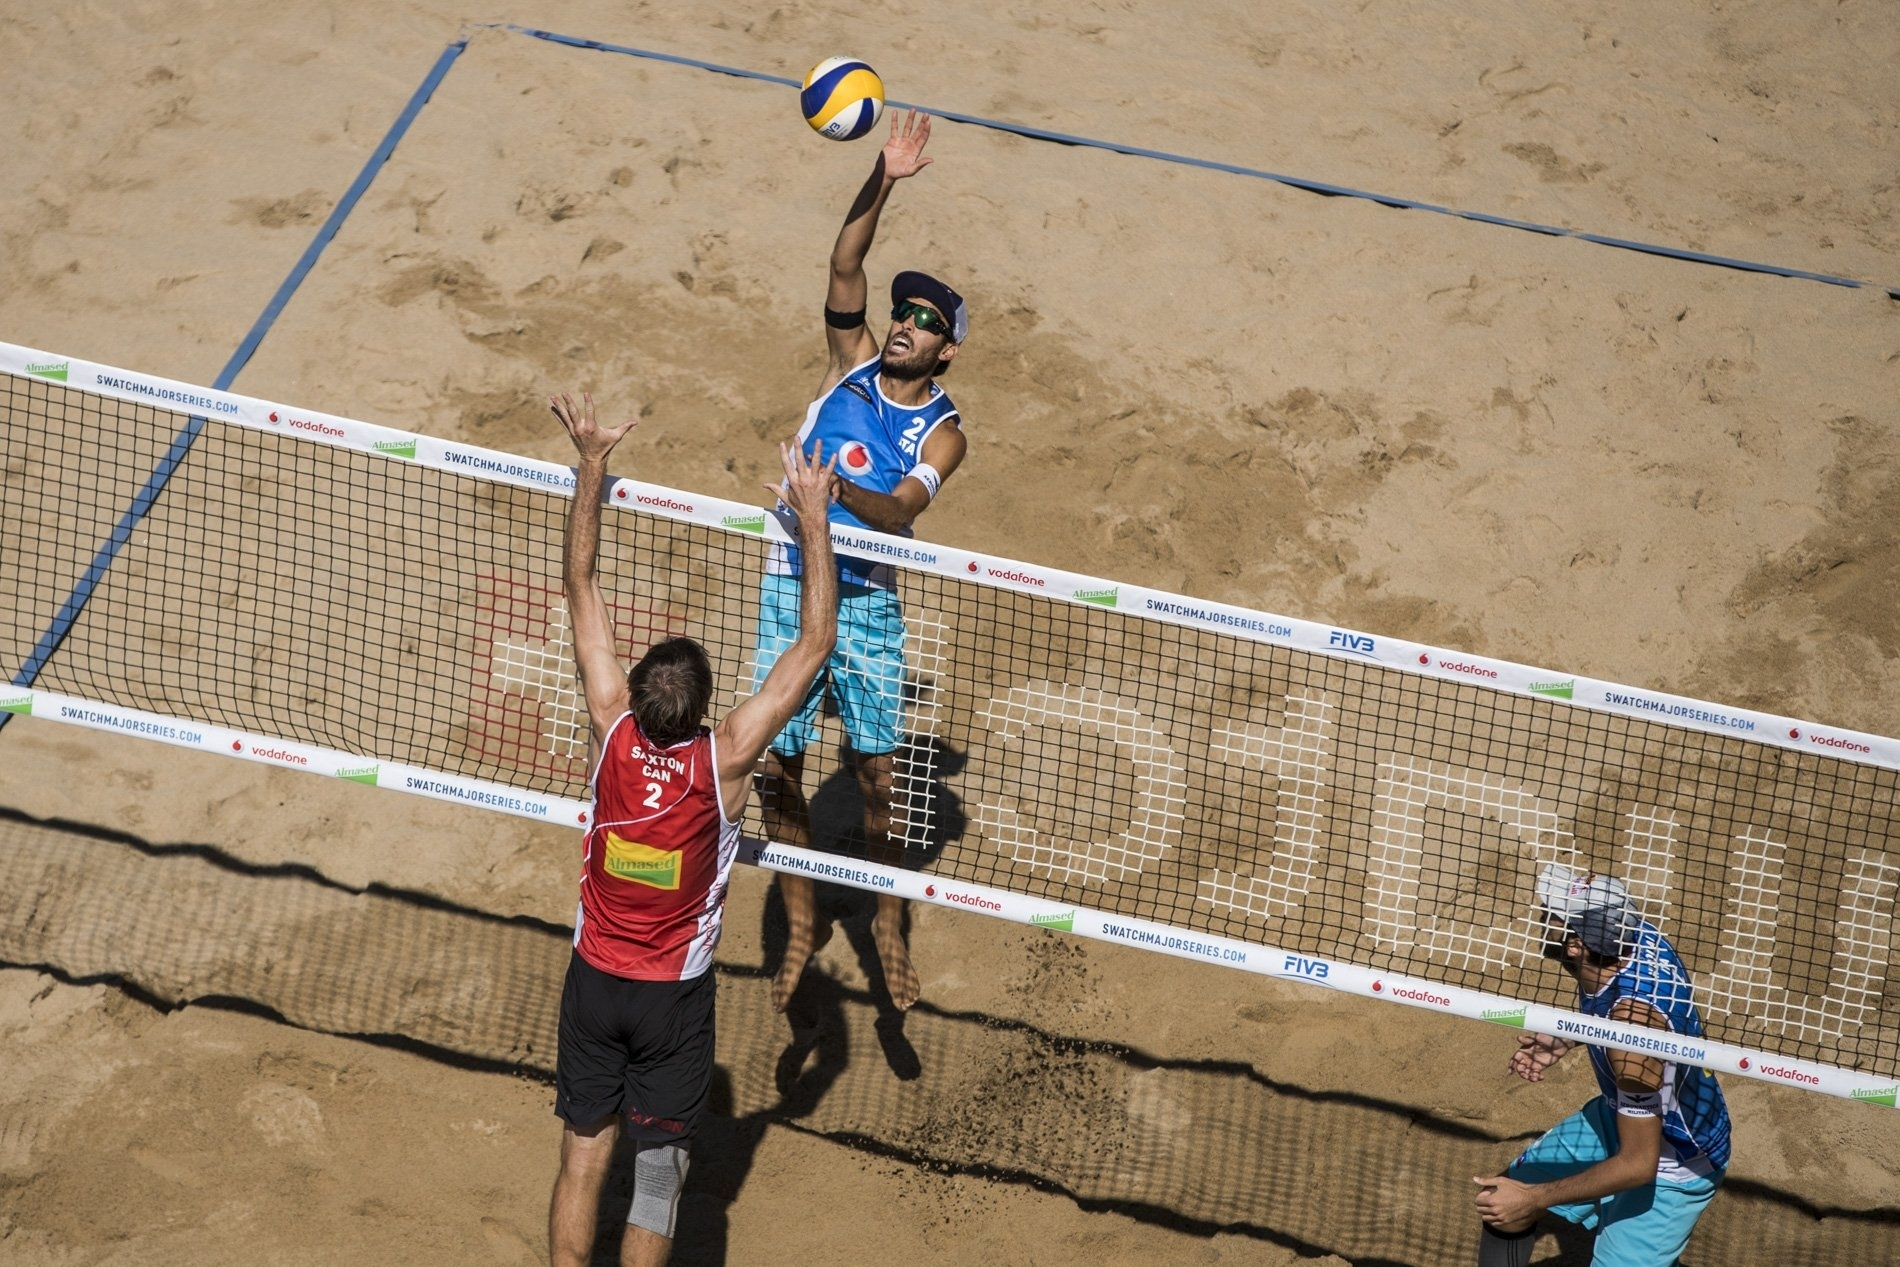 Italians Lupo/Nicolai in action in their opening match as double European champions